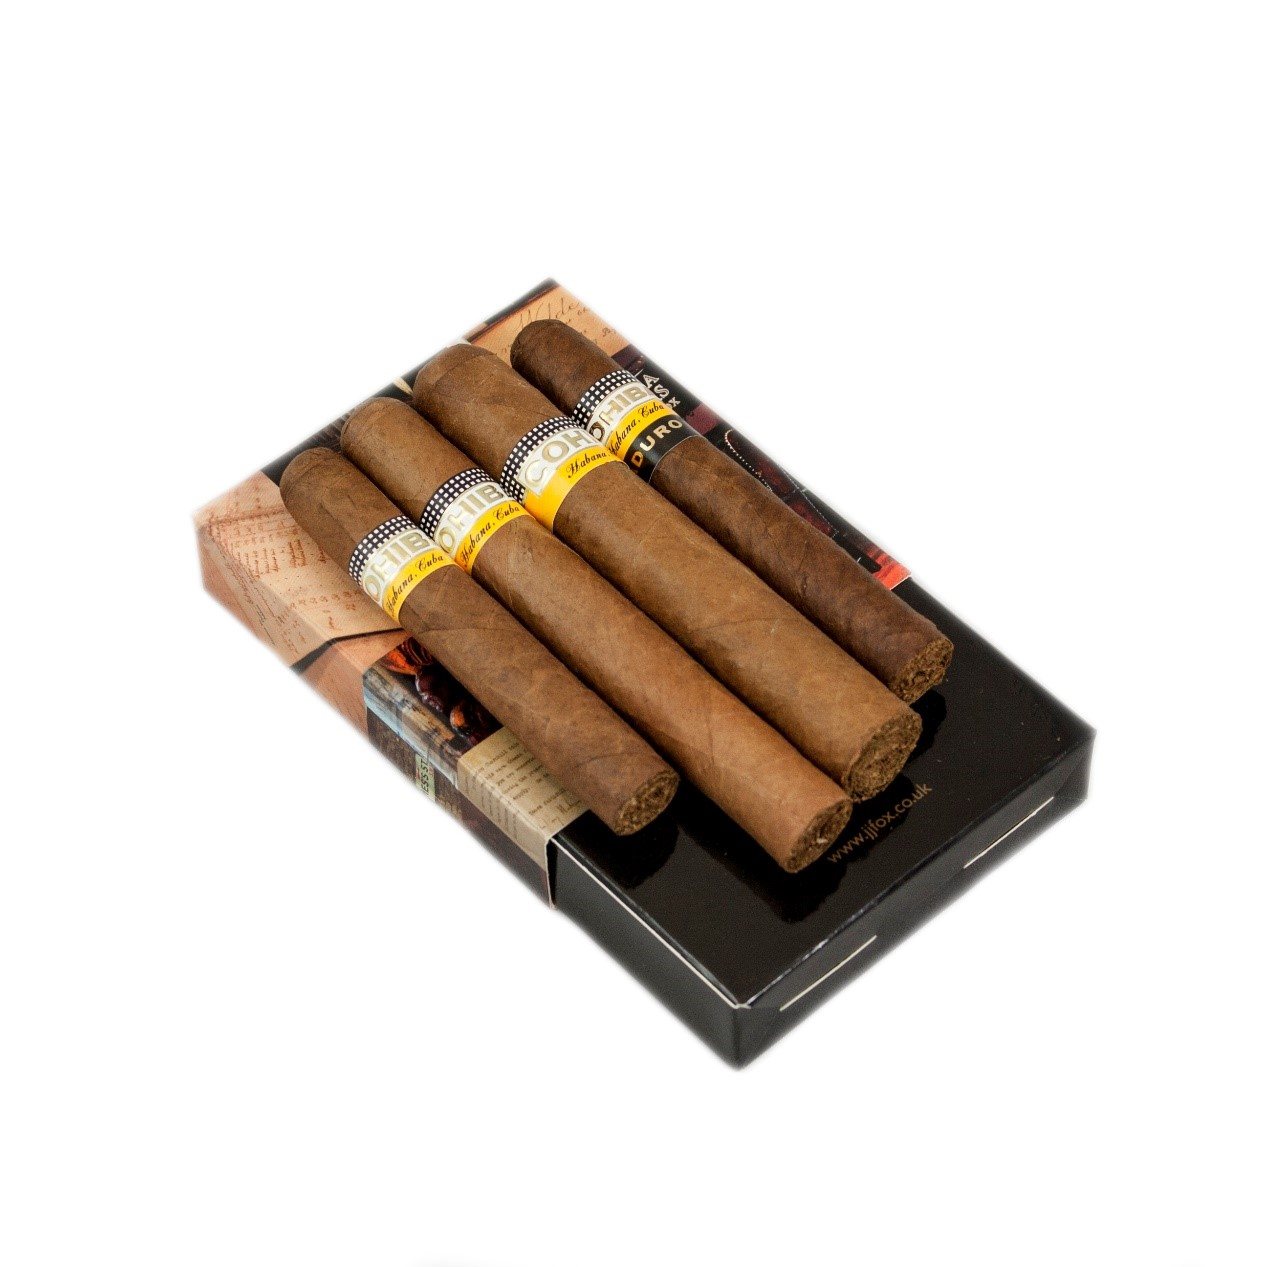 Best of Cohiba Cigars Sampler